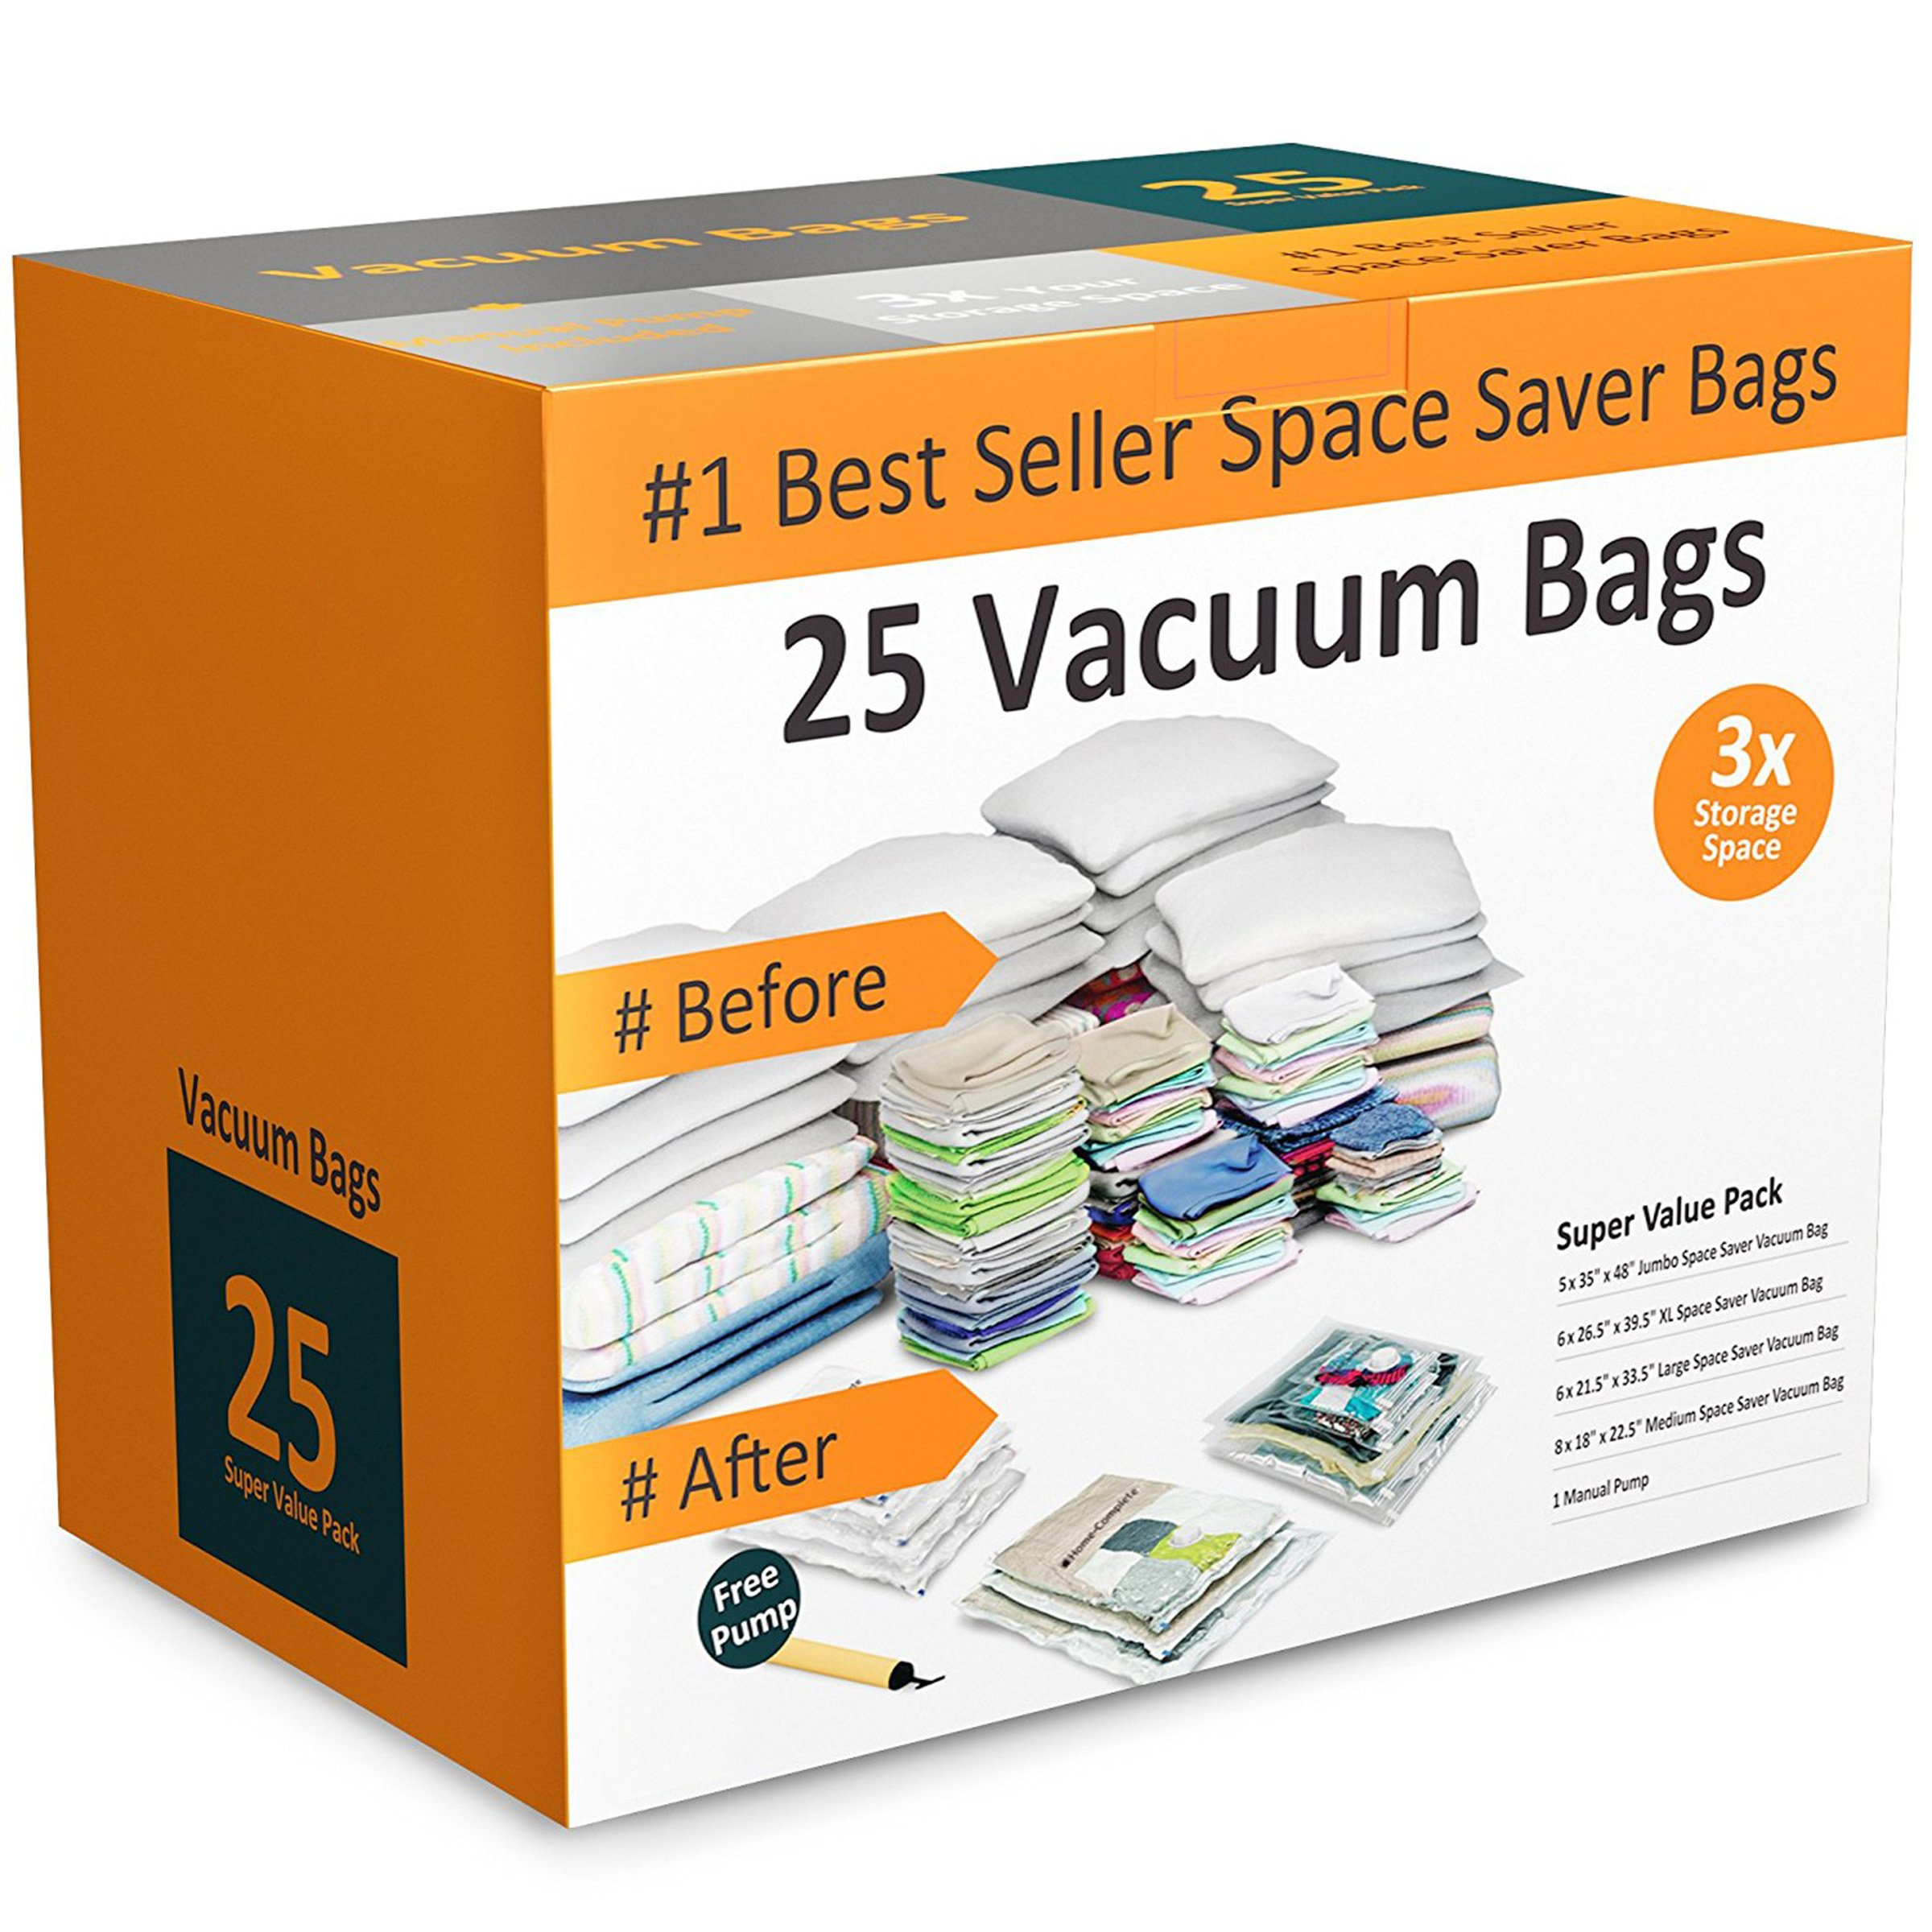 Everyday Home 83-79 Vacuum Storage Bags-Space Saving Air Tight Compression-Shrink Down Closet Clutter, Store and Organize Clothes, Linens, Seasonal Items, 25